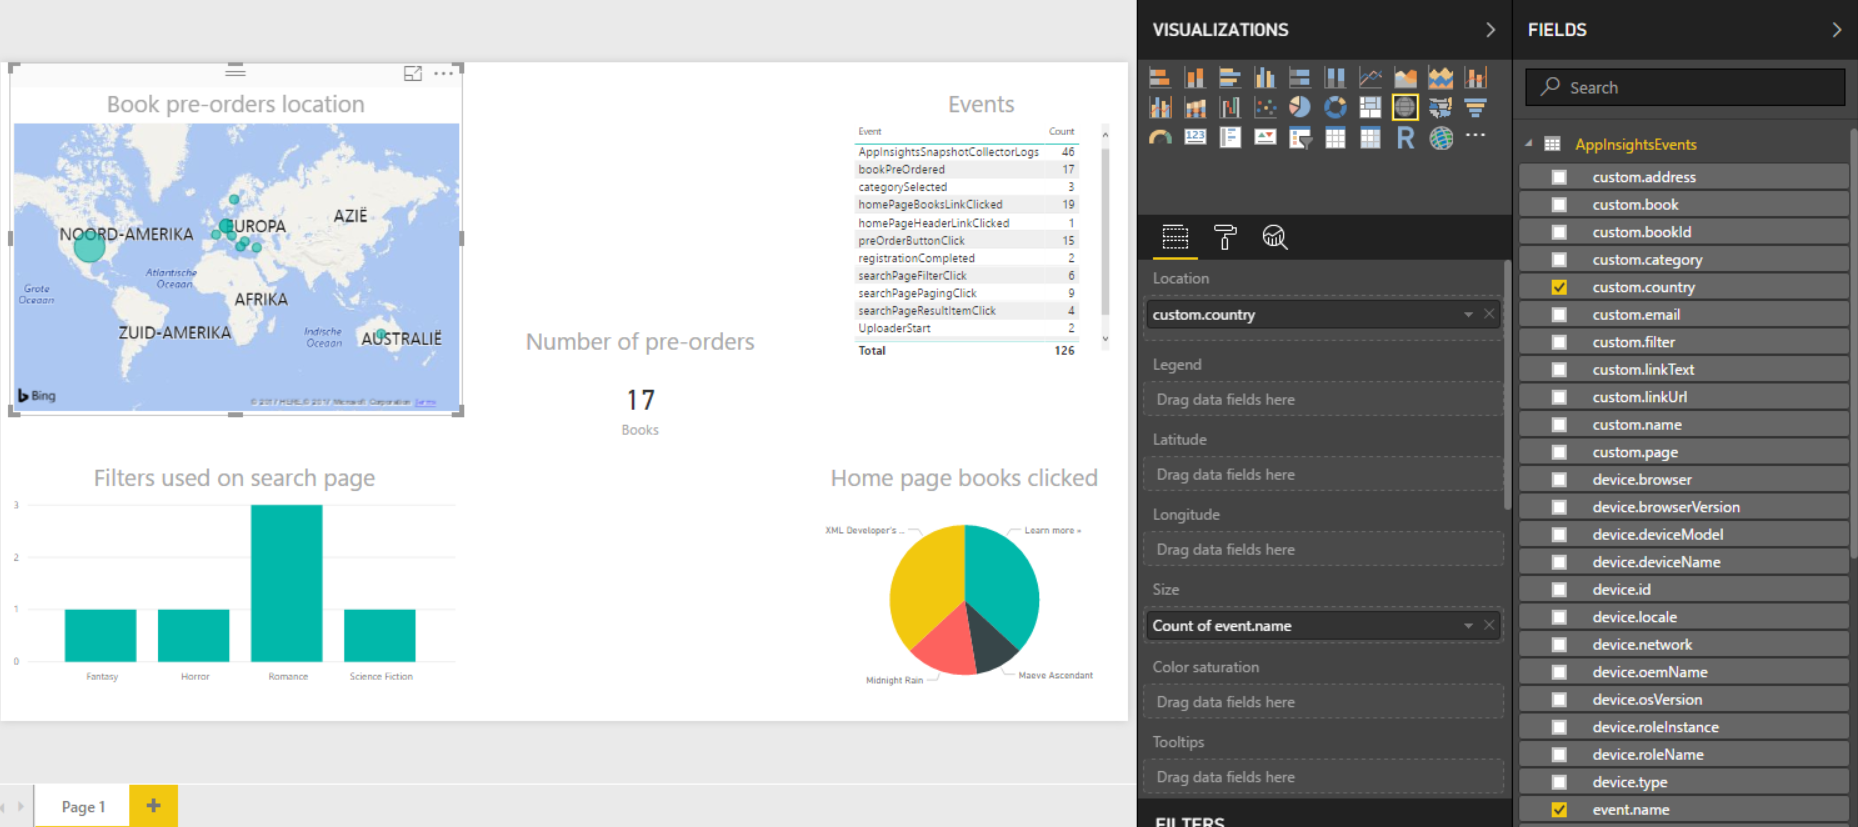 Power BI use data to build visualizations